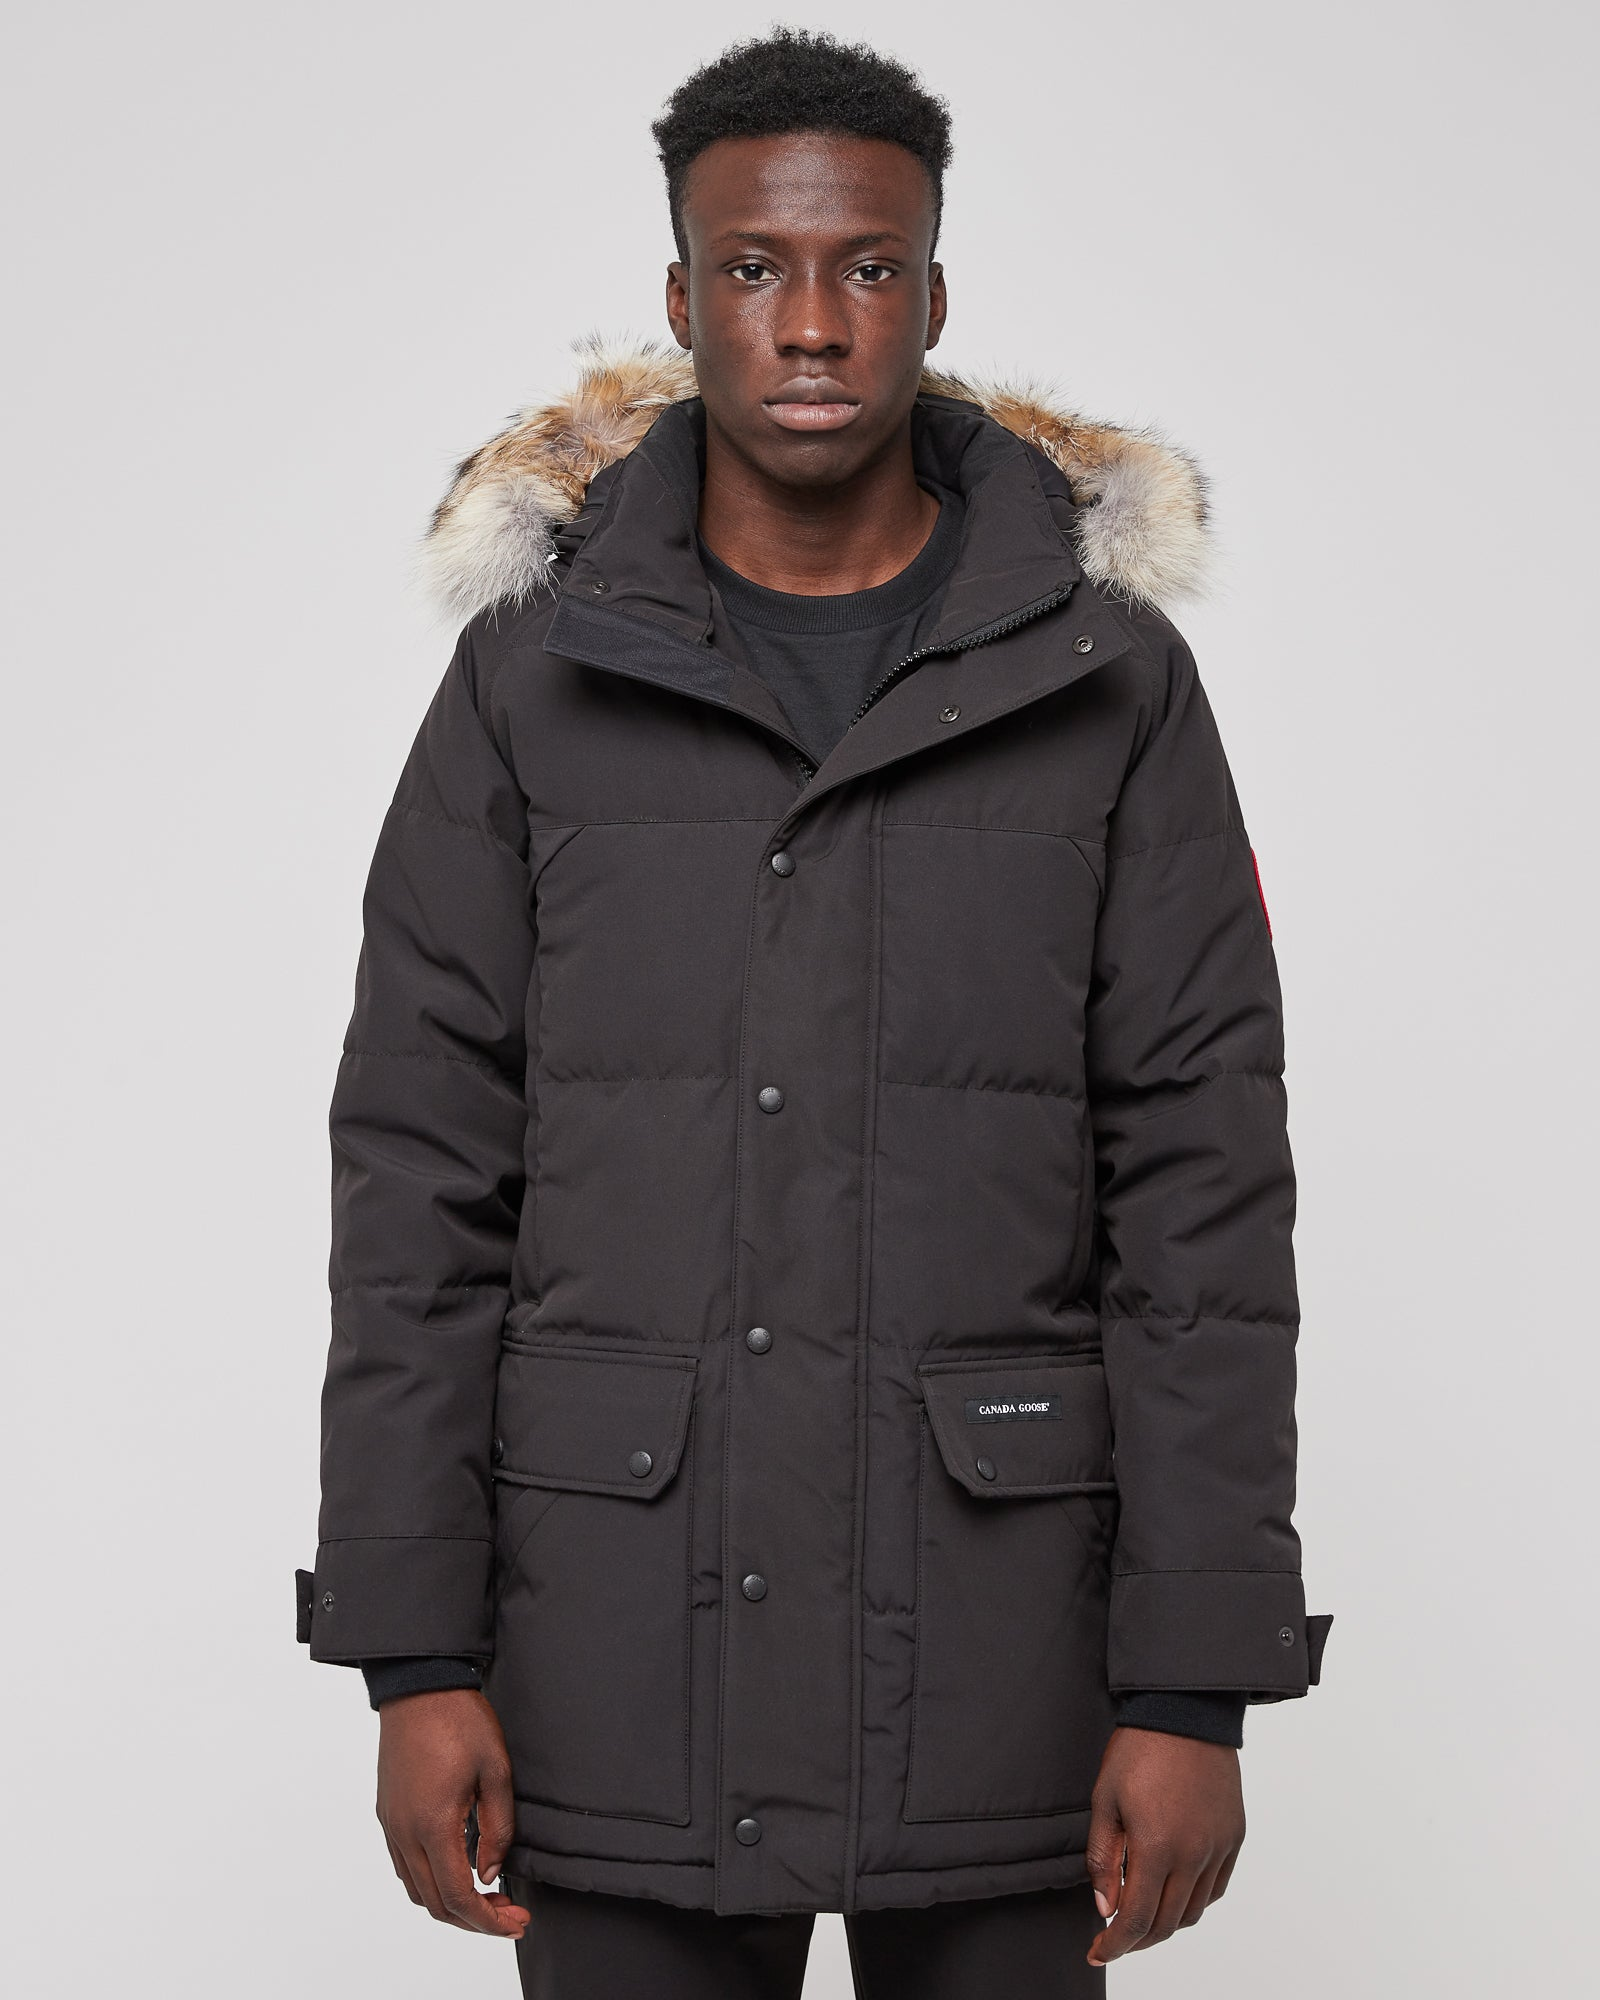 Emory Parka in Black